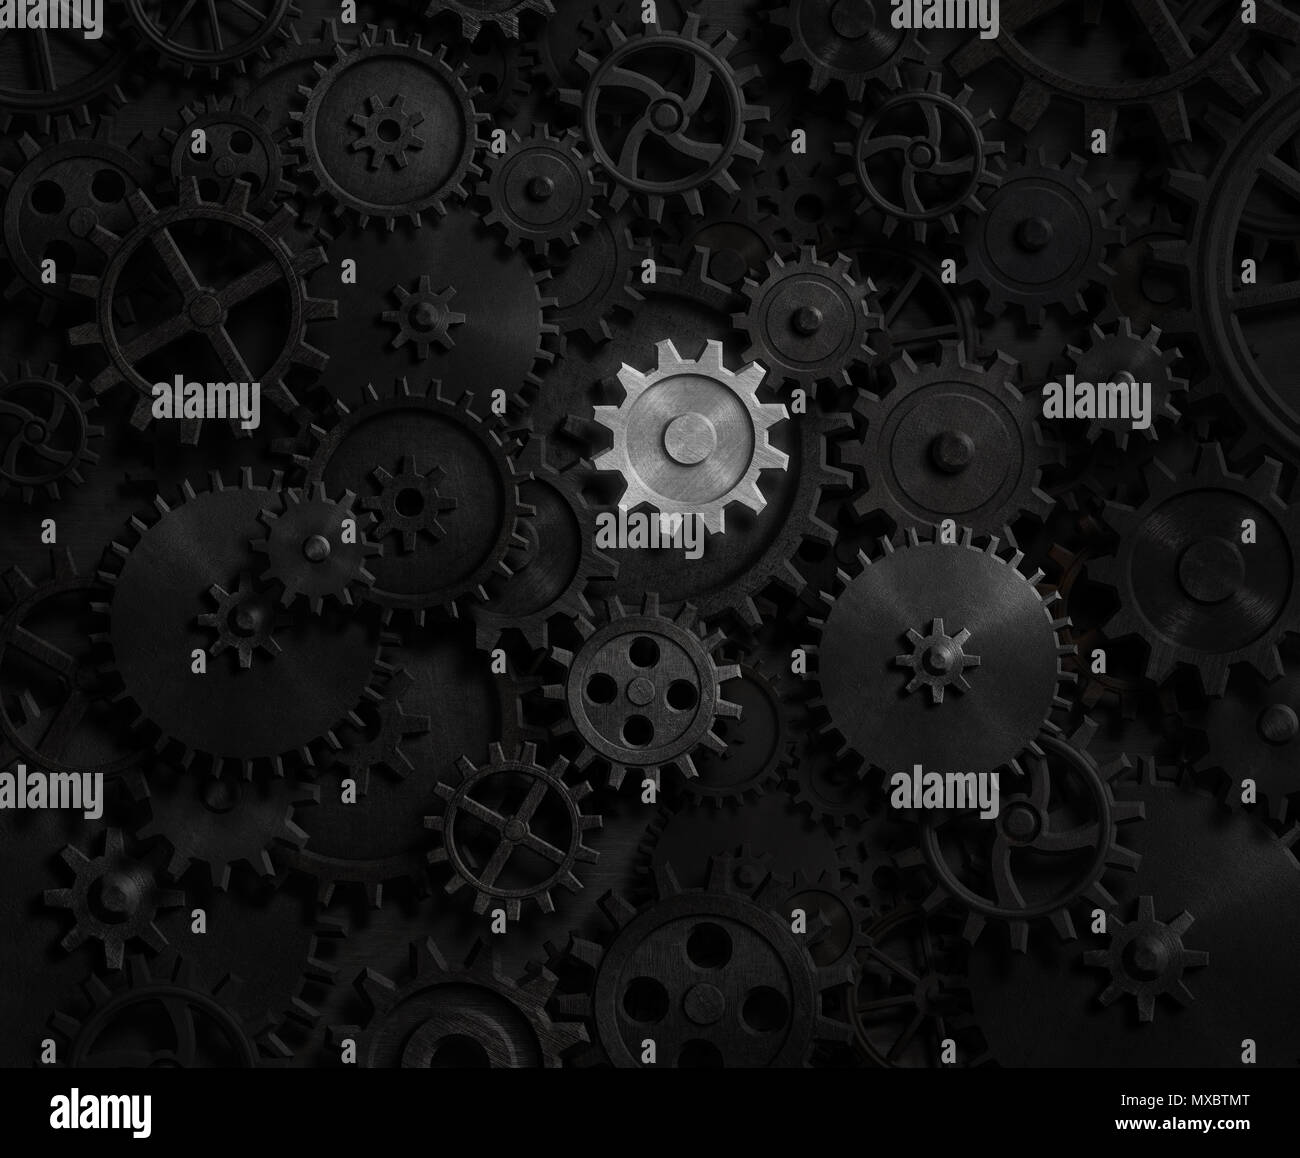 Old gears and cogs with bright one 3d illustration - Stock Image